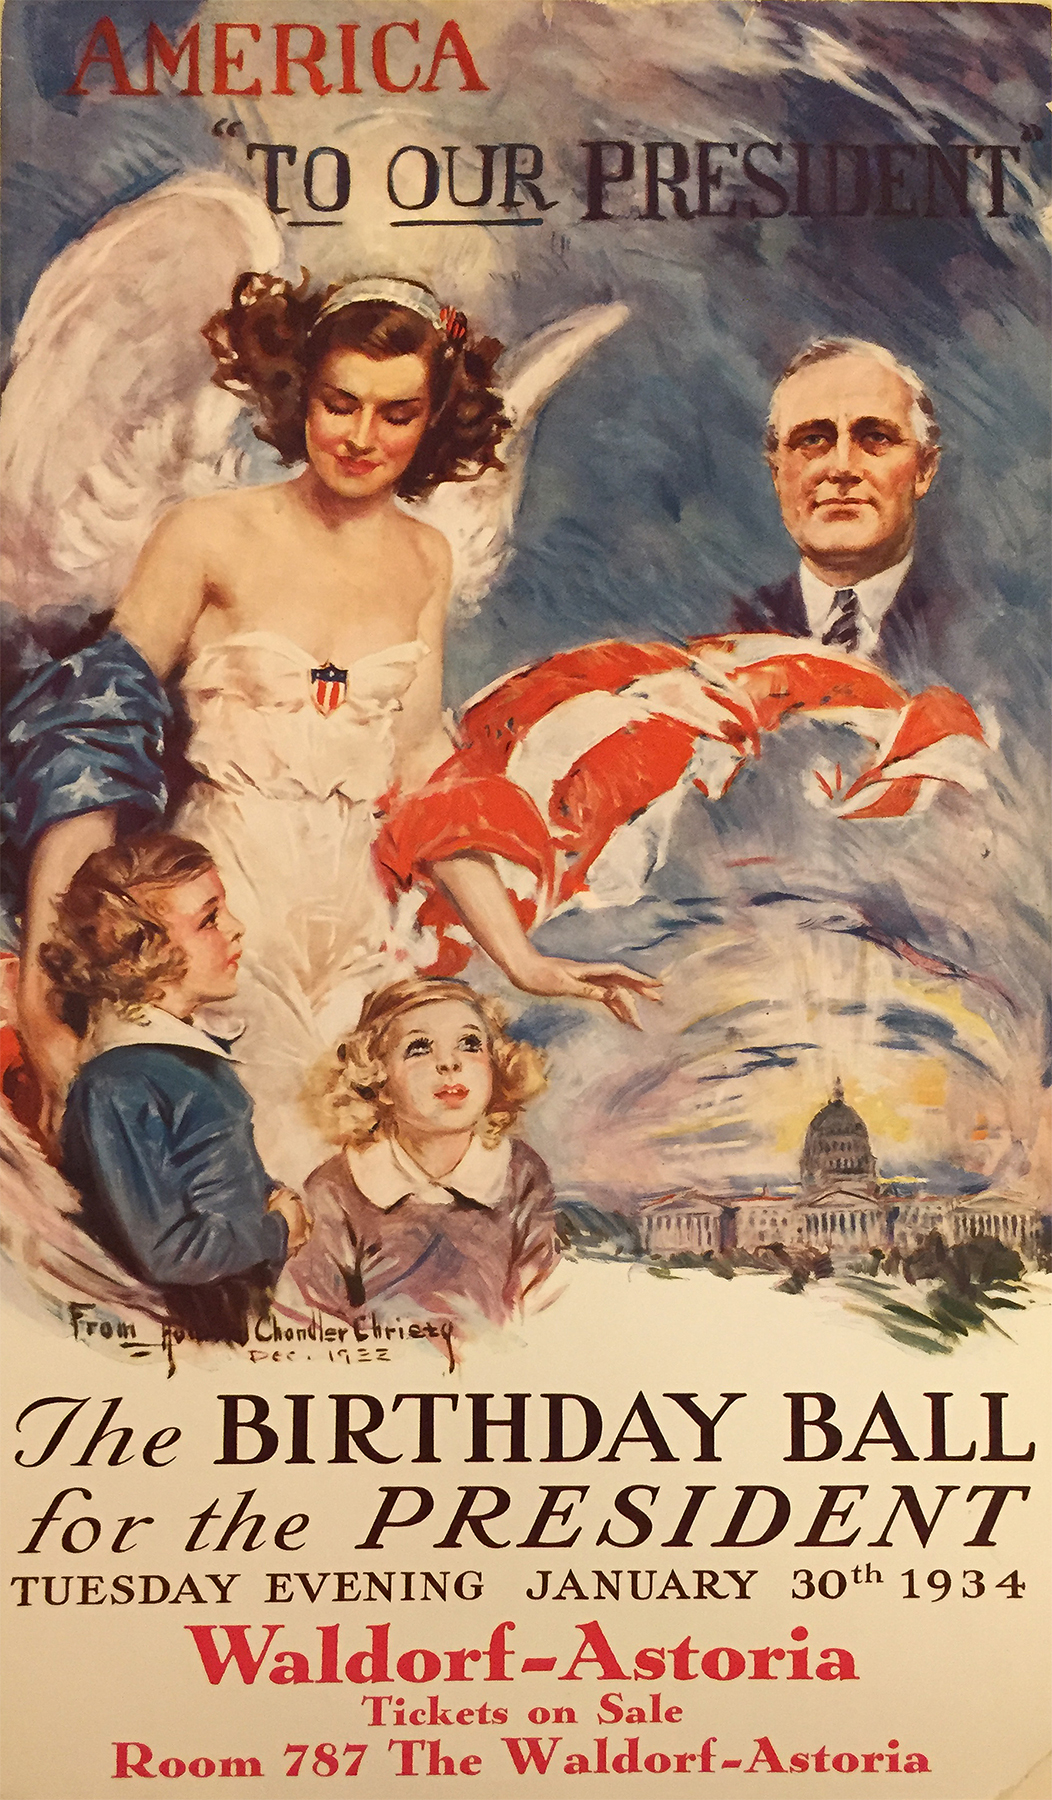 Howard Chandler Christy.  America To Our President. The Birthday Ball for the President. January 30, 1934. (N-YHS)